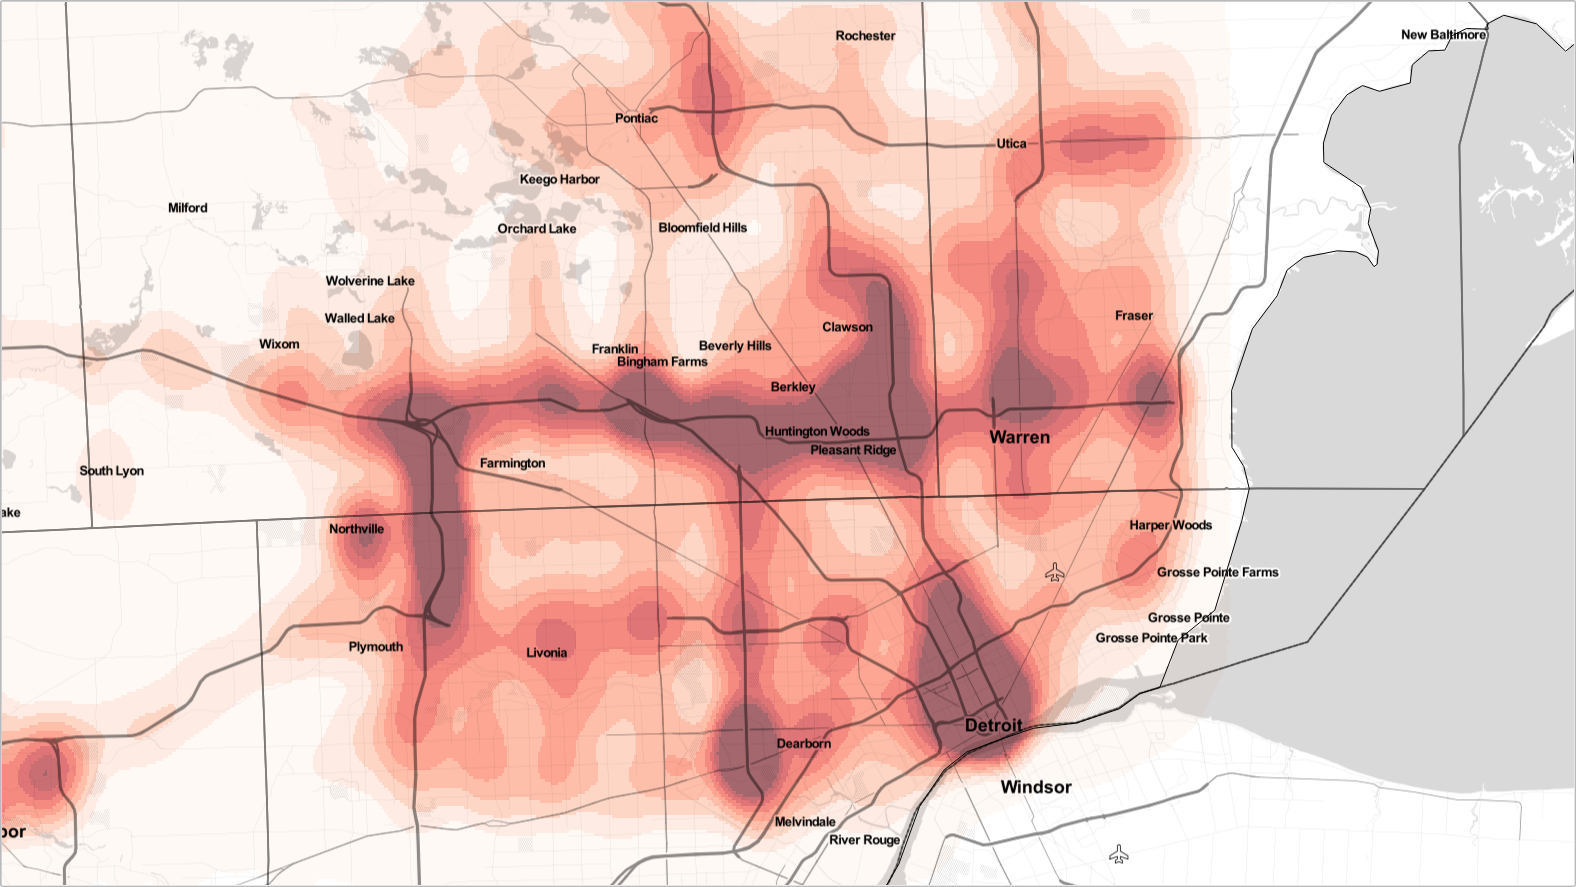 Detroit Metro mobile network use patterns